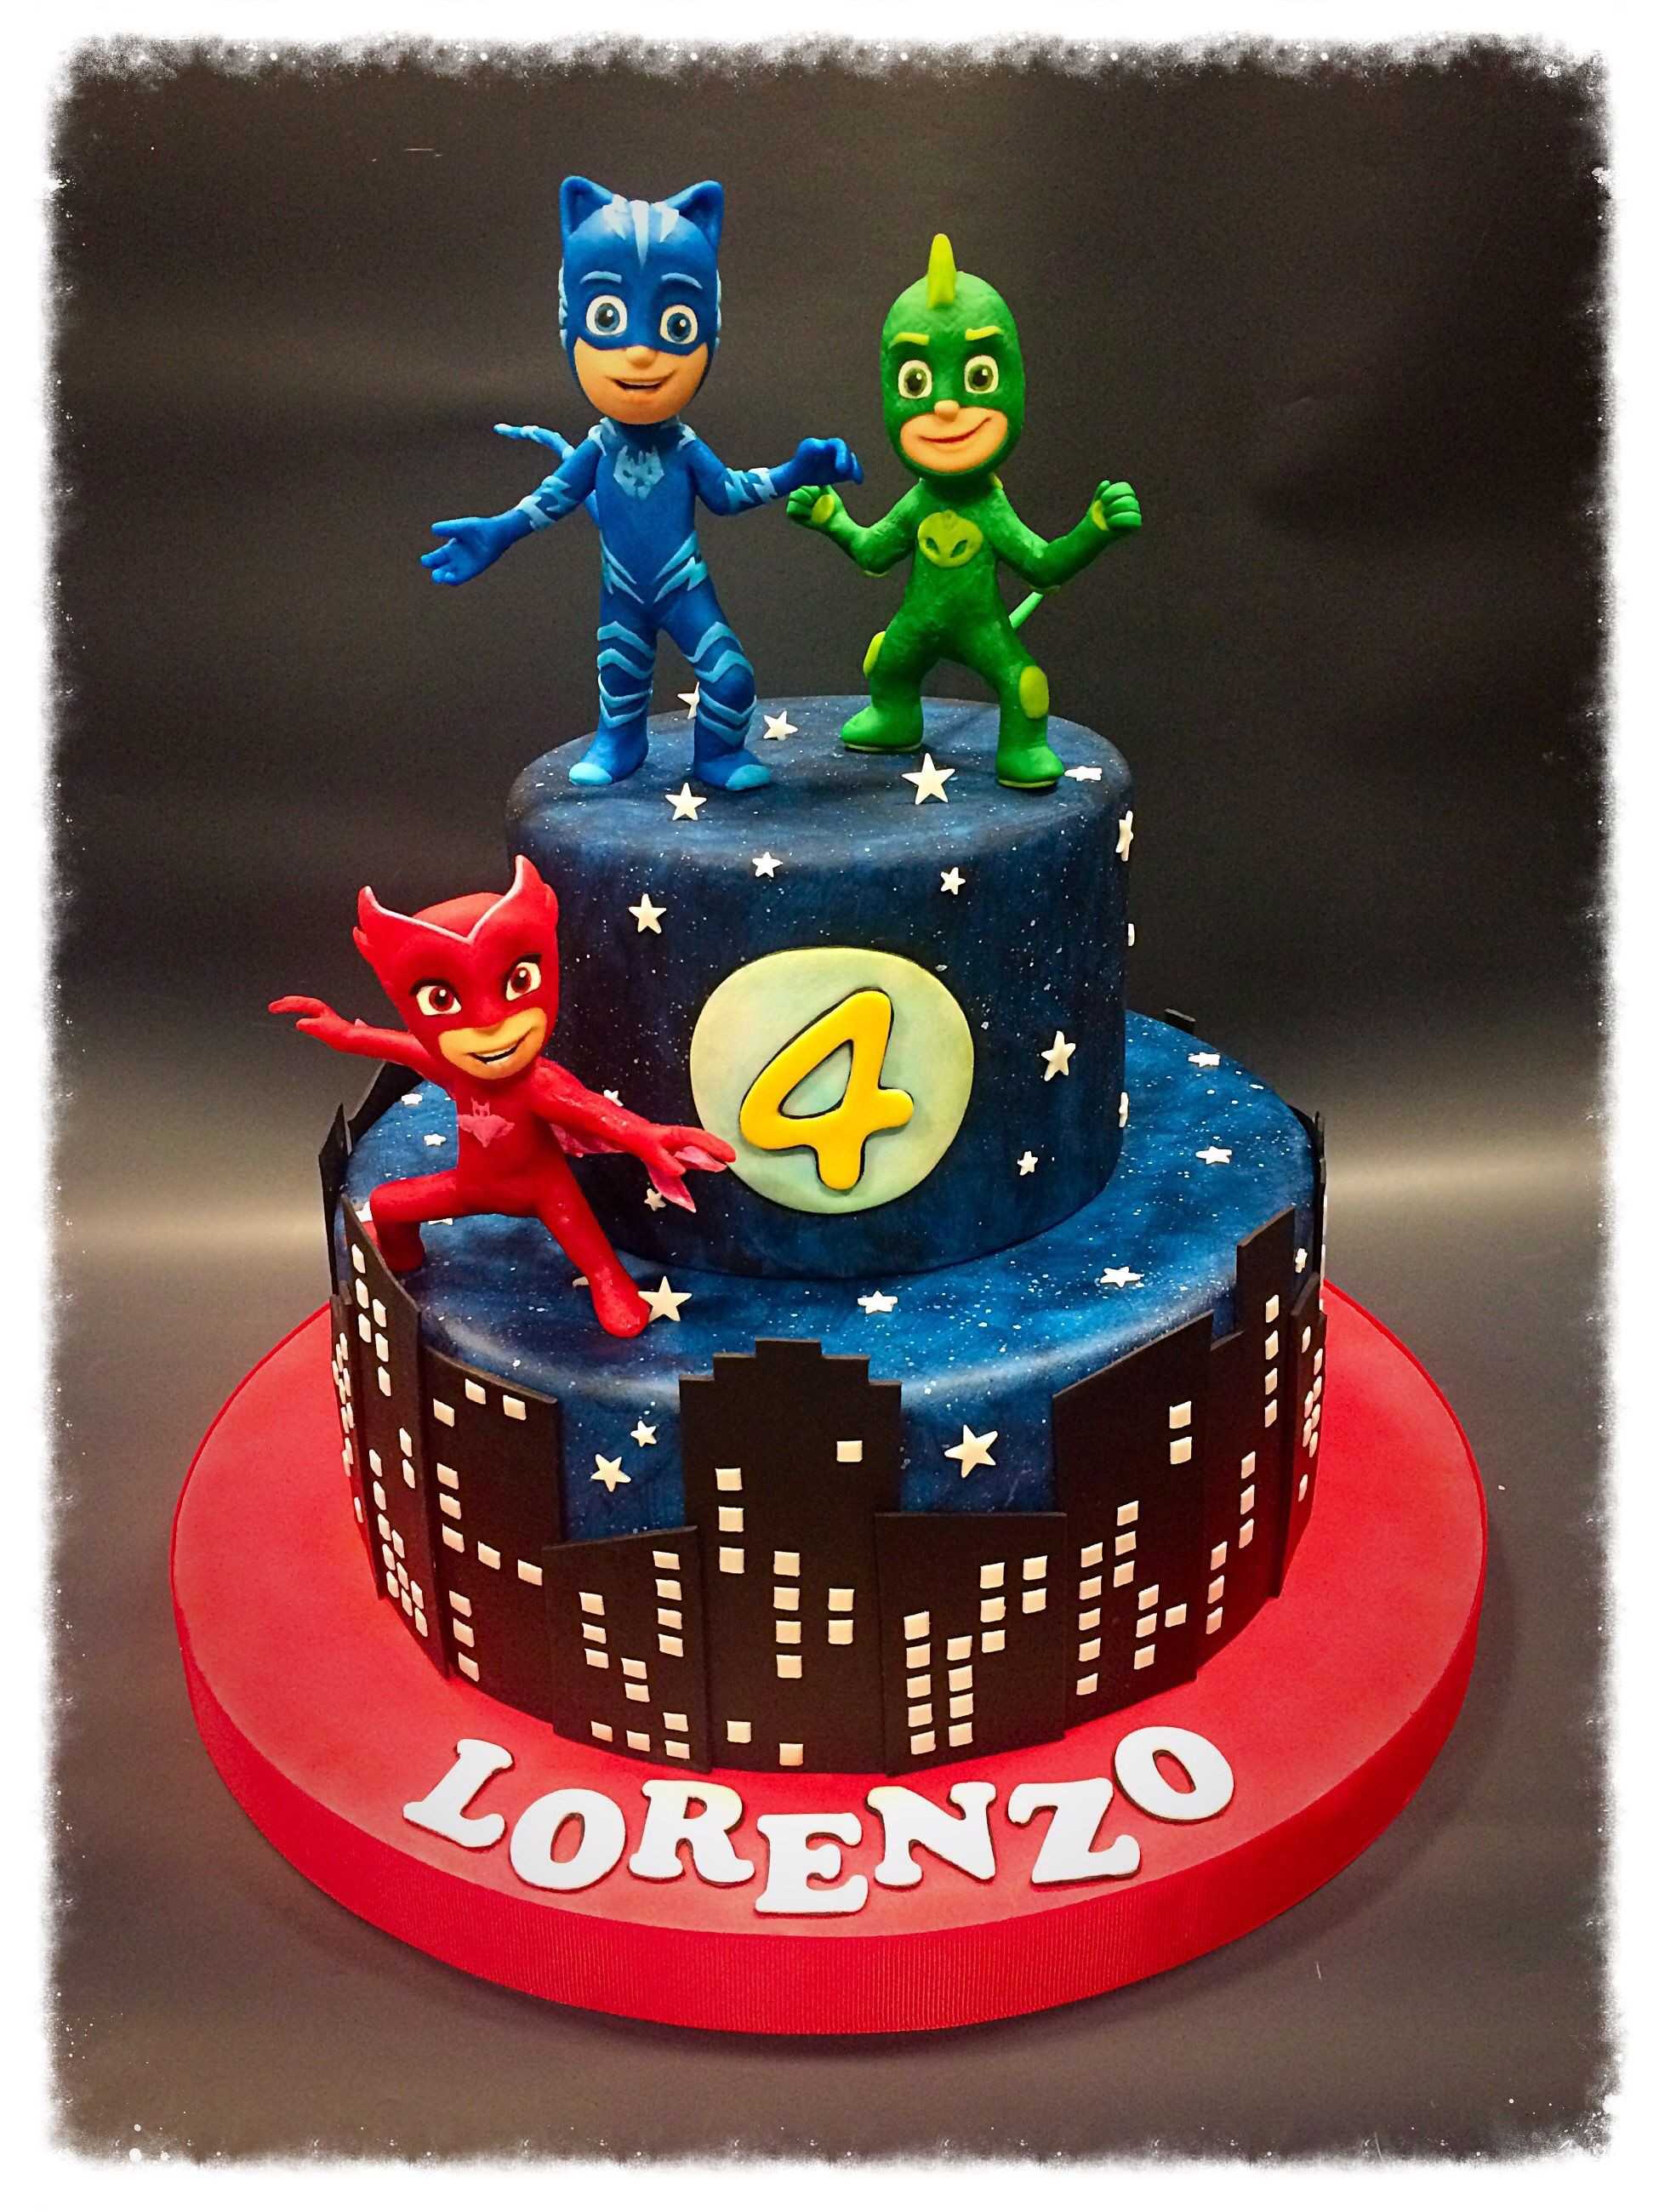 Best ideas about Pj Masks Birthday Cake Ideas . Save or Pin Torta o Recetas Pinterest Now.